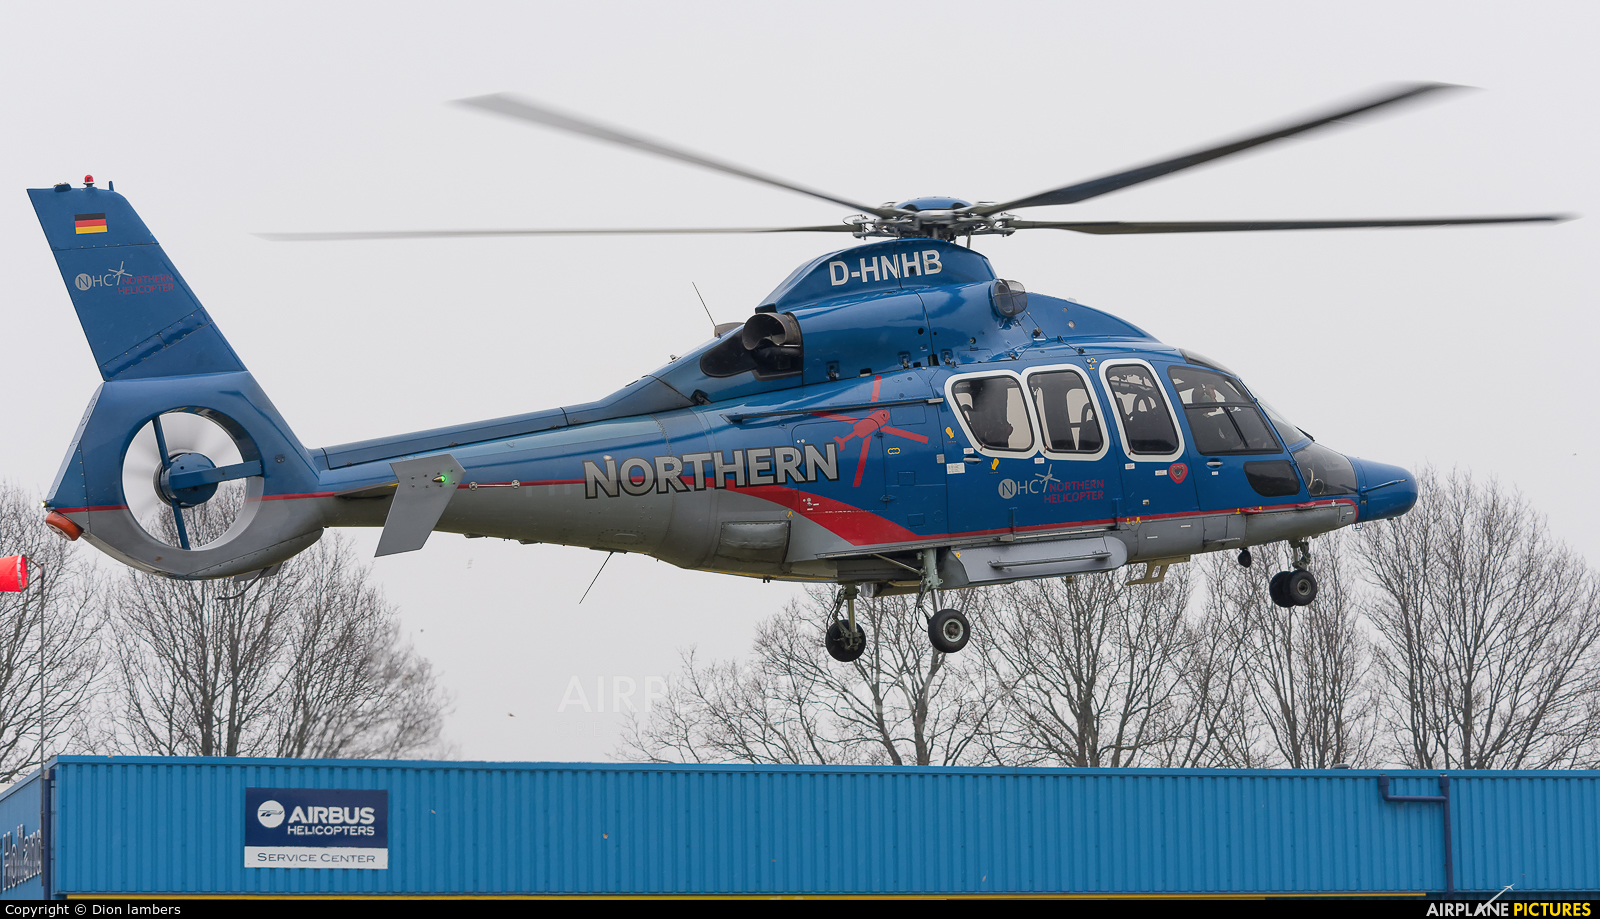 Northern Helicopters D-HNHB aircraft at Heli-port Emmen